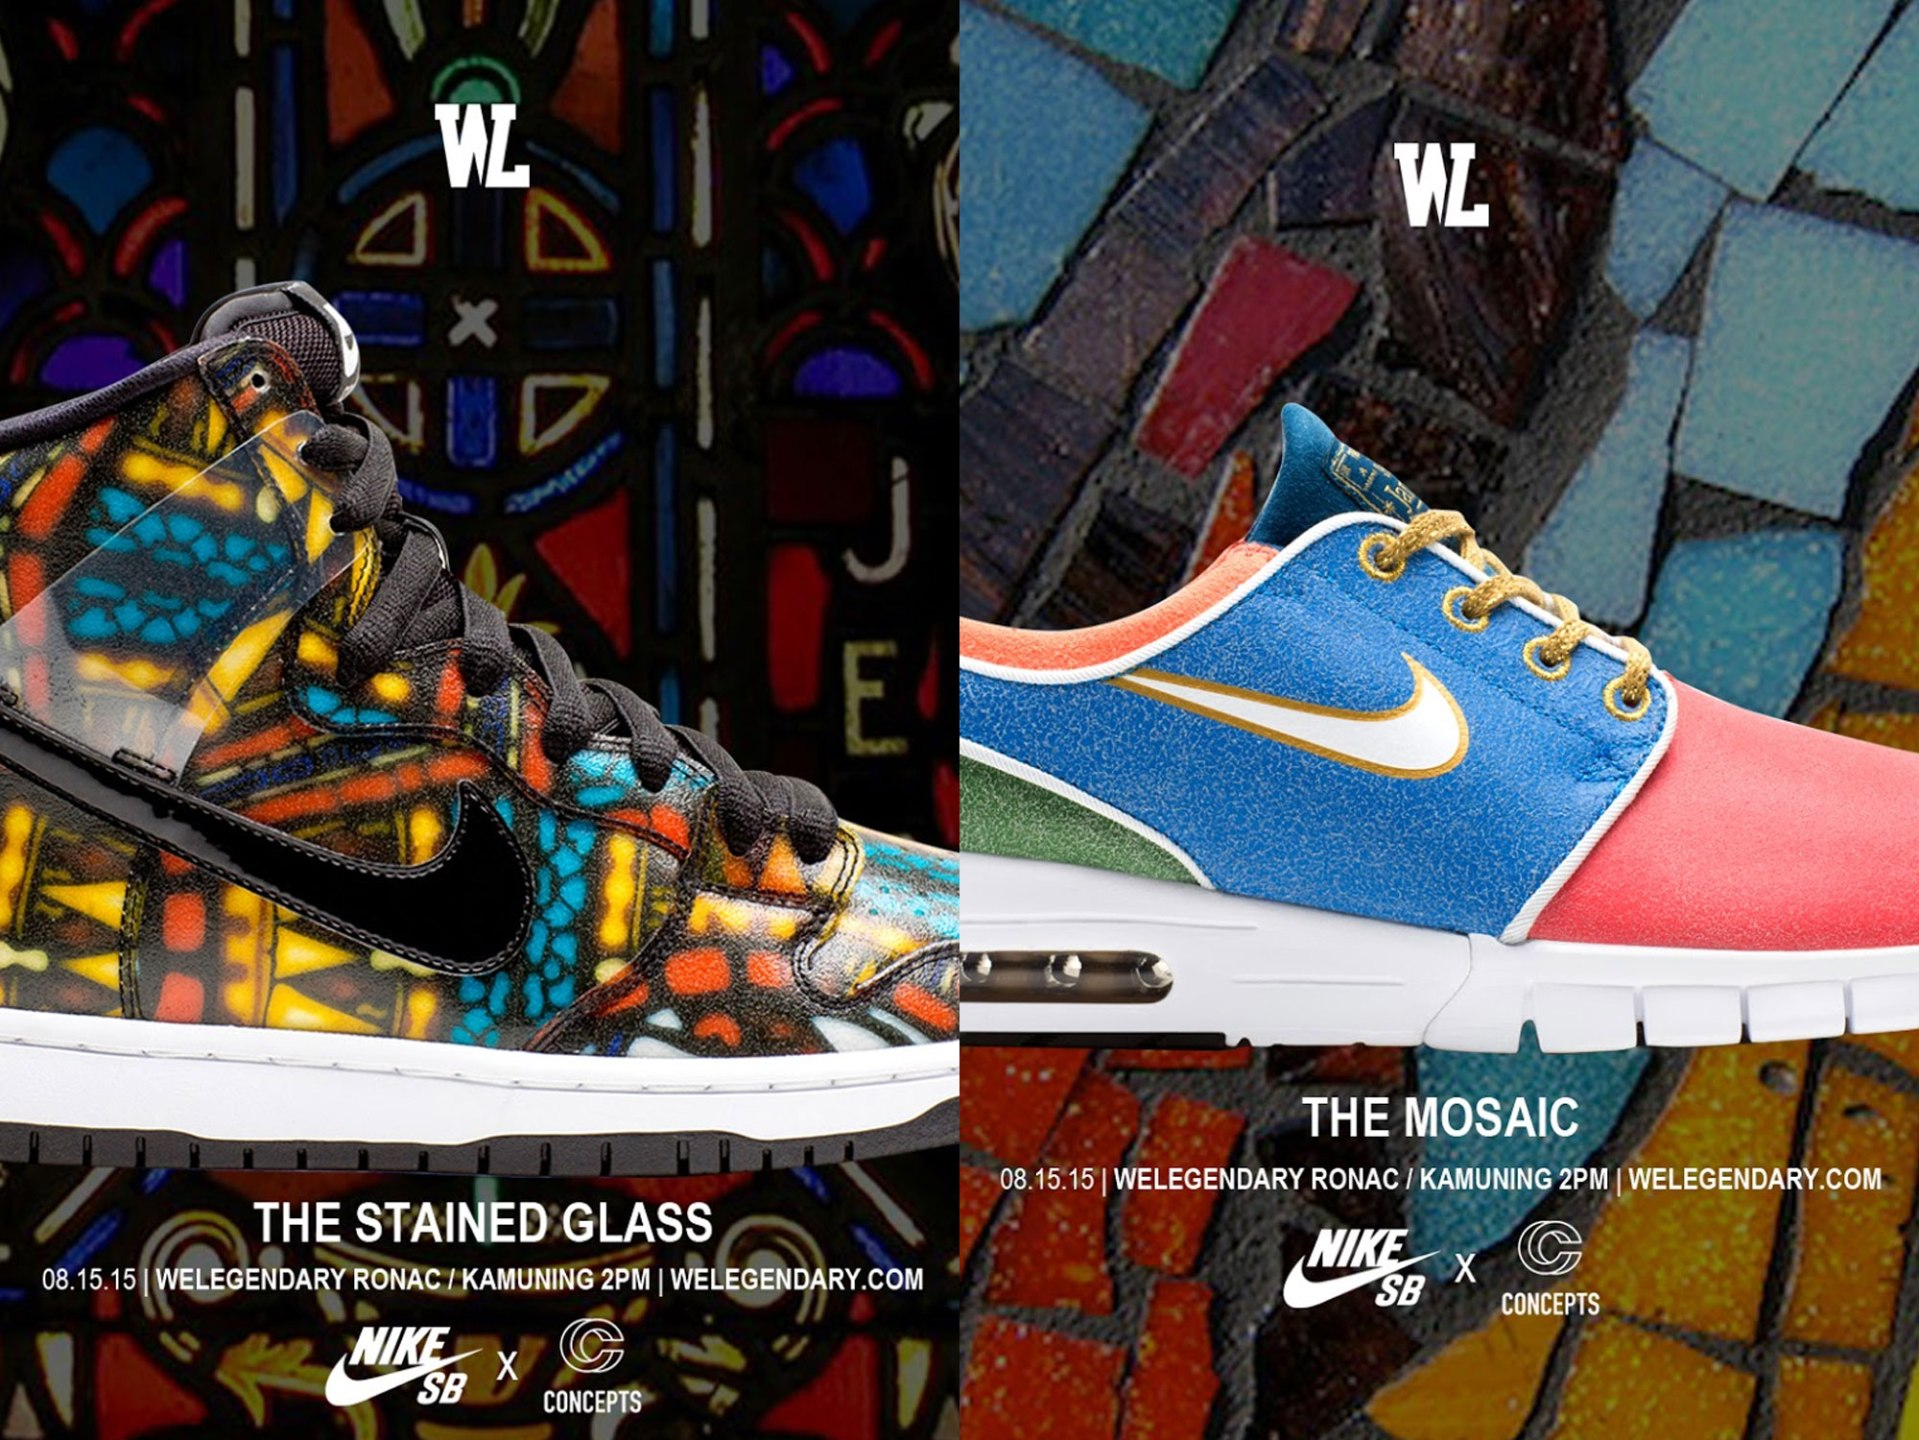 Nike SB x Concepts dropping at WeLegendary